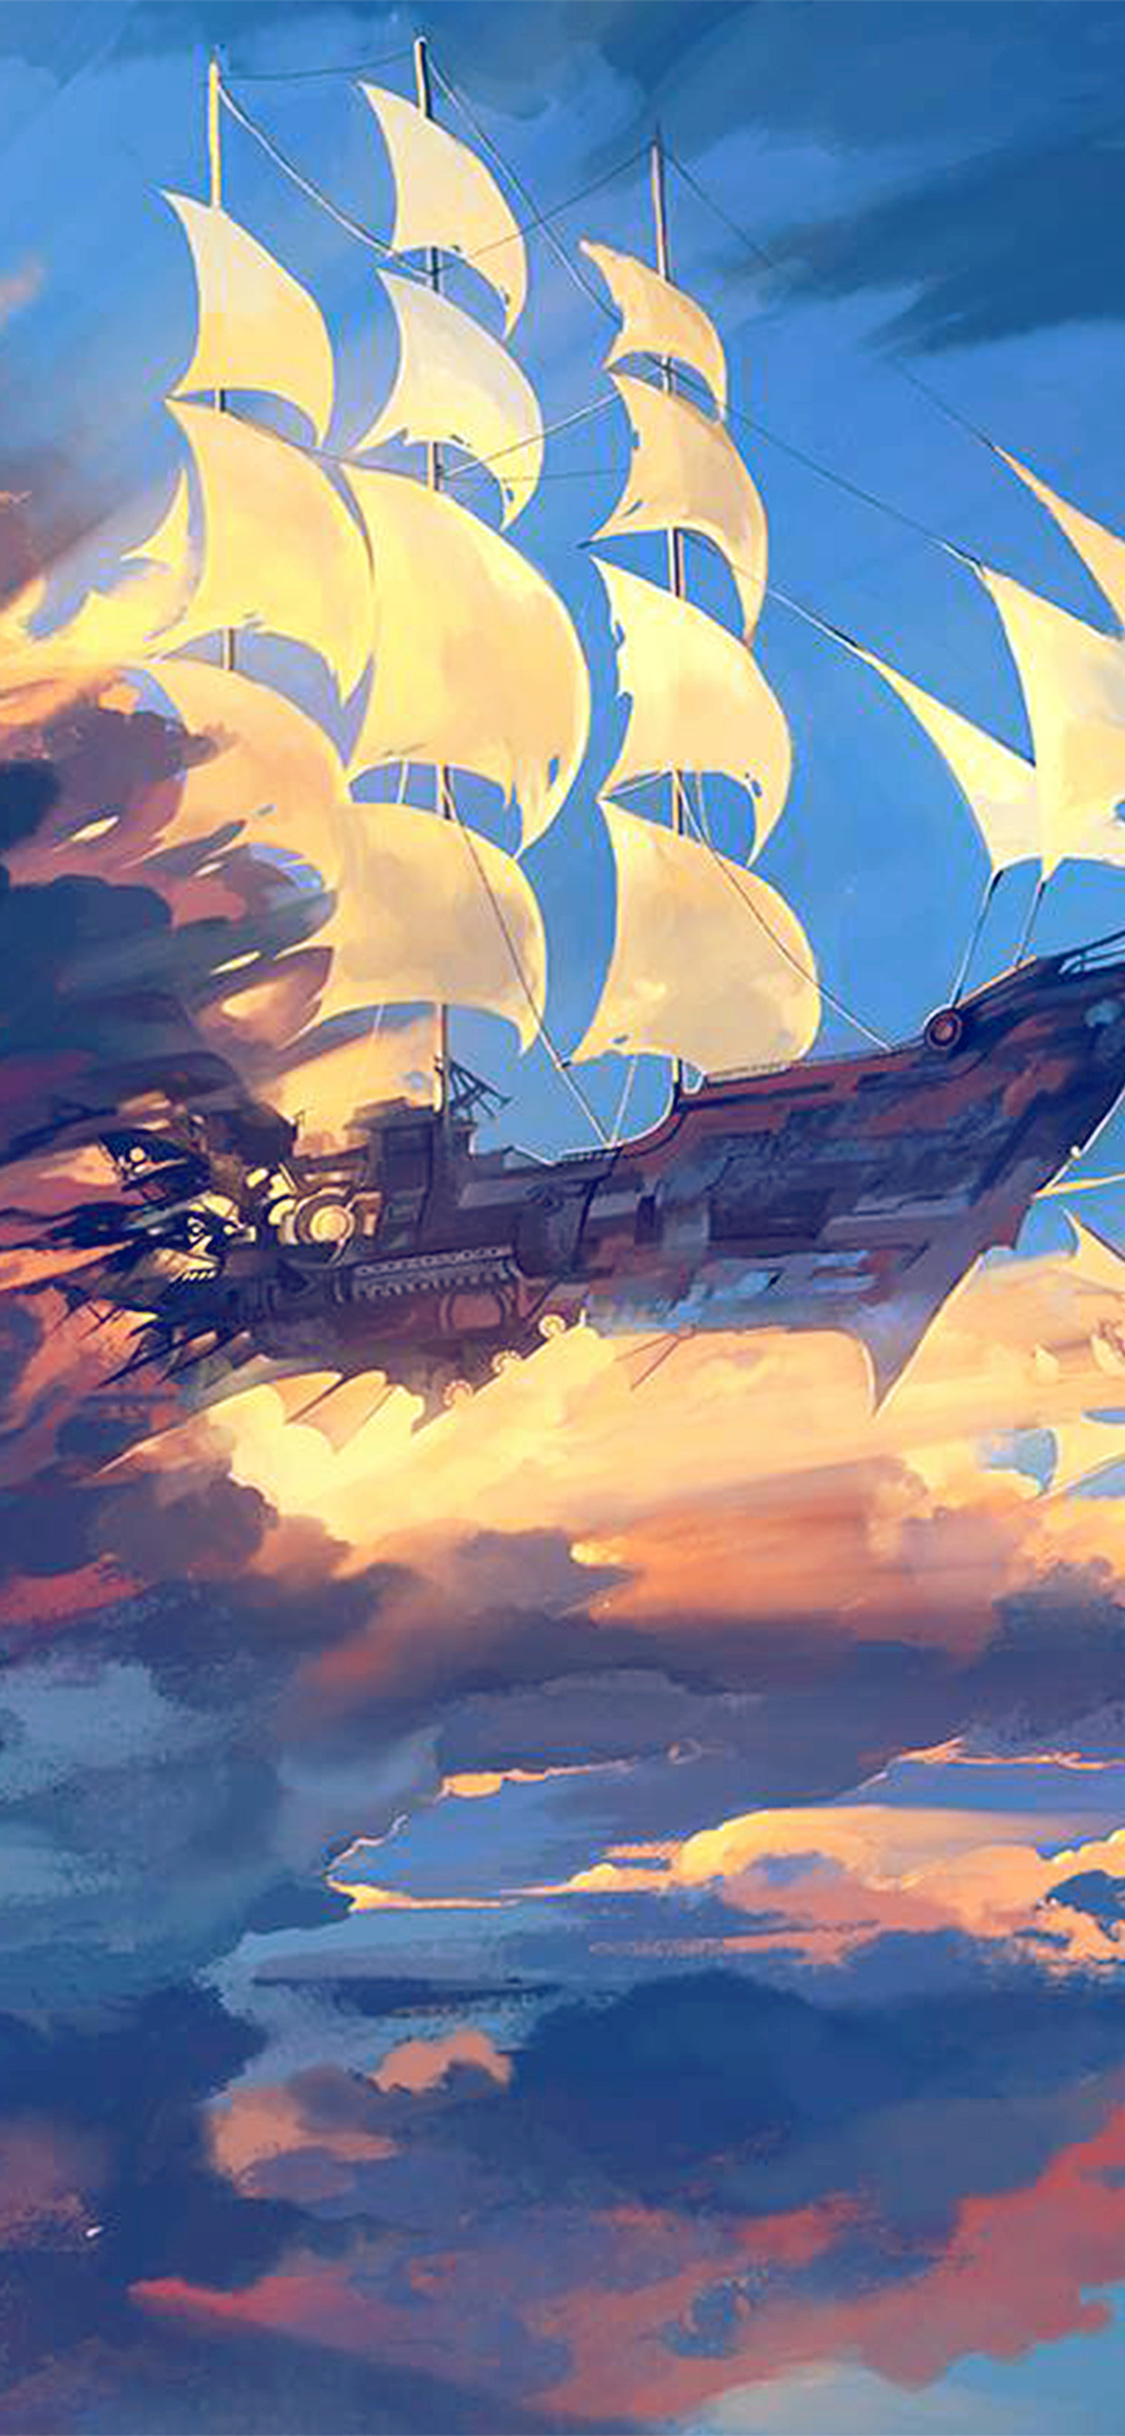 Disney Fall Iphone Wallpaper Papers Co Iphone Wallpaper Az68 Fly Ship Anime